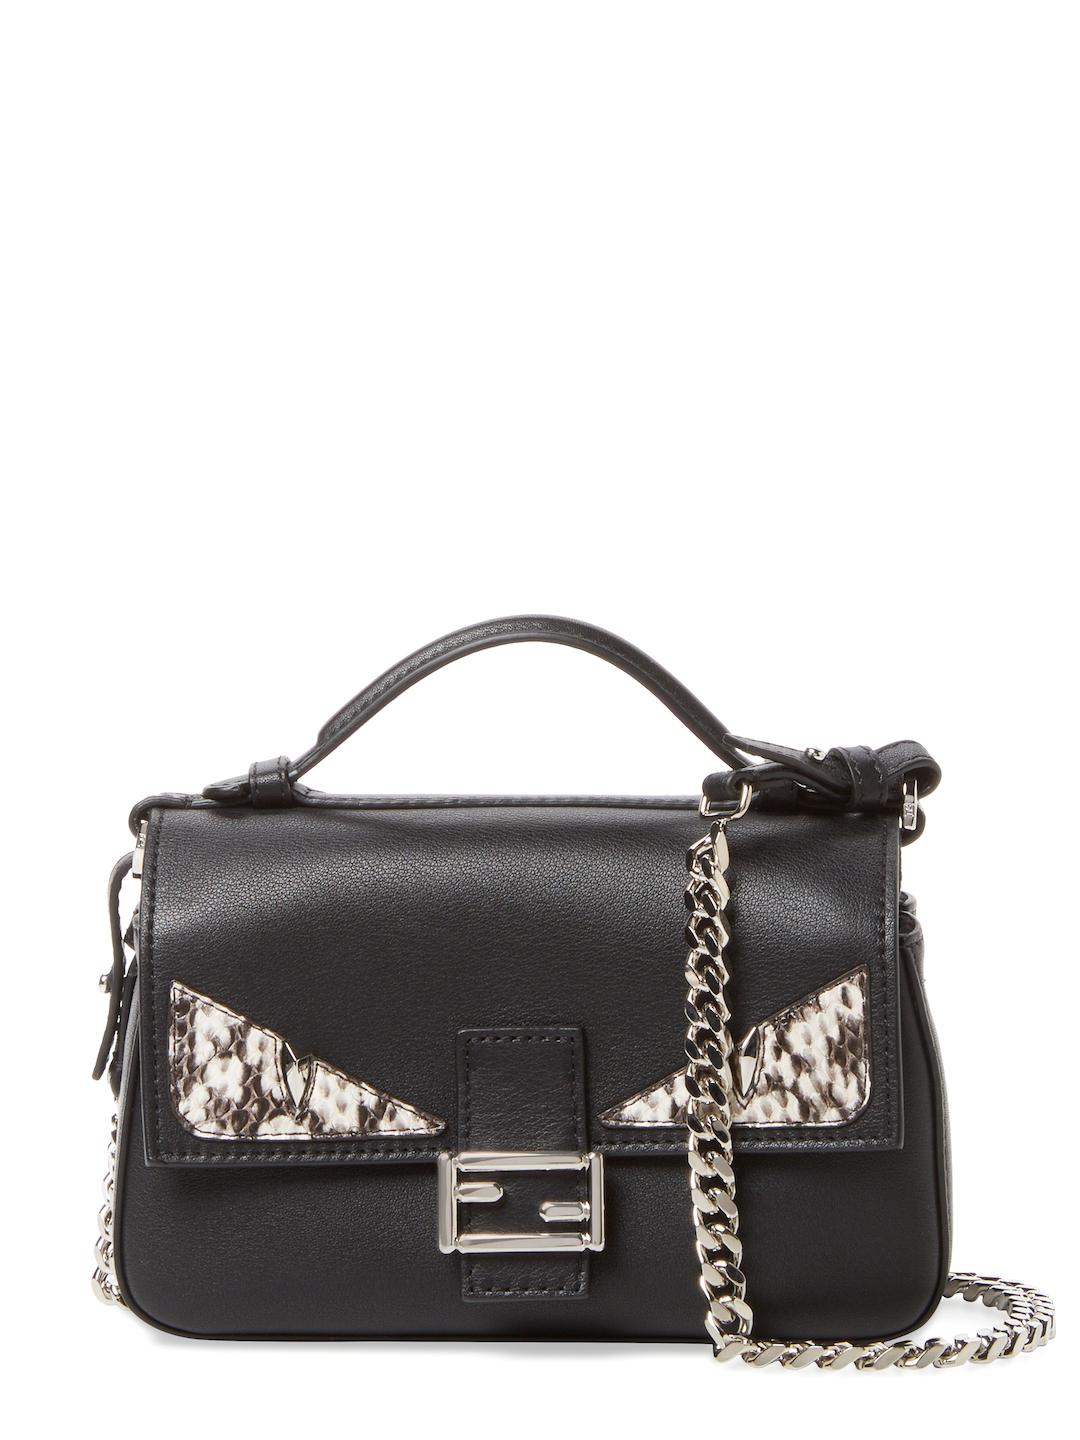 43c51a801c7c Gallery. Previously sold at  Gilt · Women s Fendi Baguette Women s Fendi  Monster